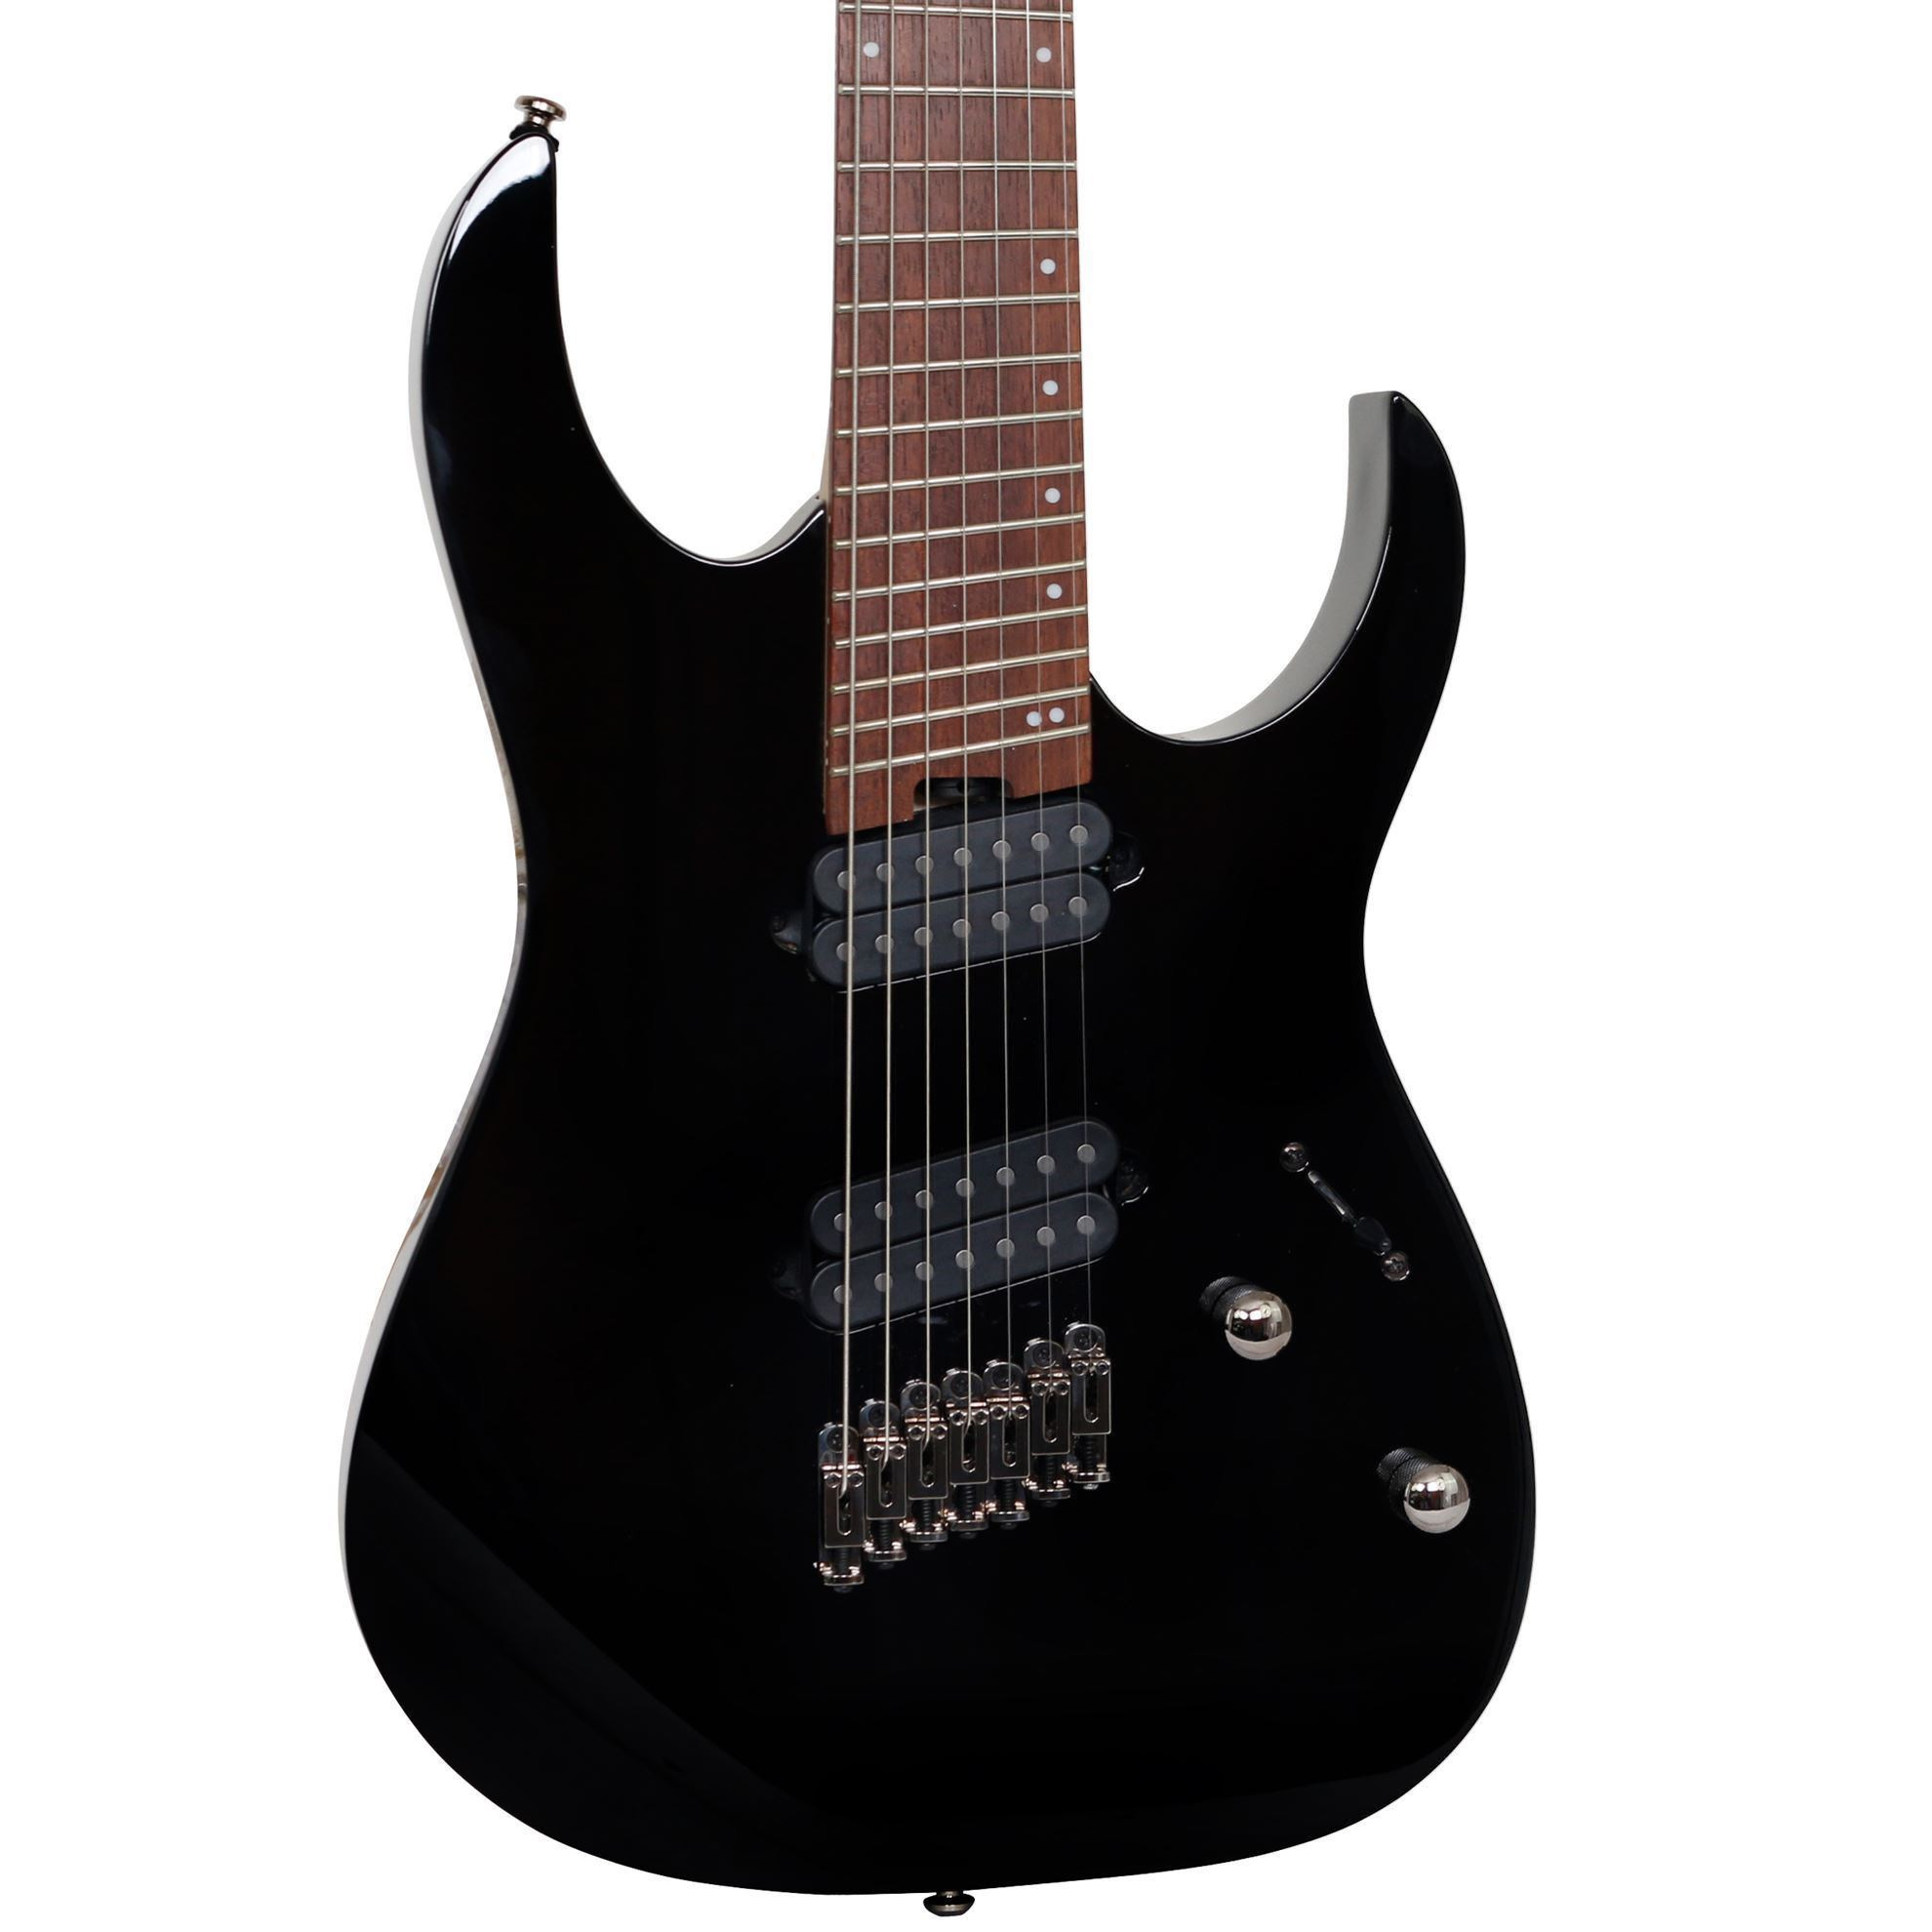 ibanez rgms7 7 string electric guitar multiscale black perth mega music online. Black Bedroom Furniture Sets. Home Design Ideas